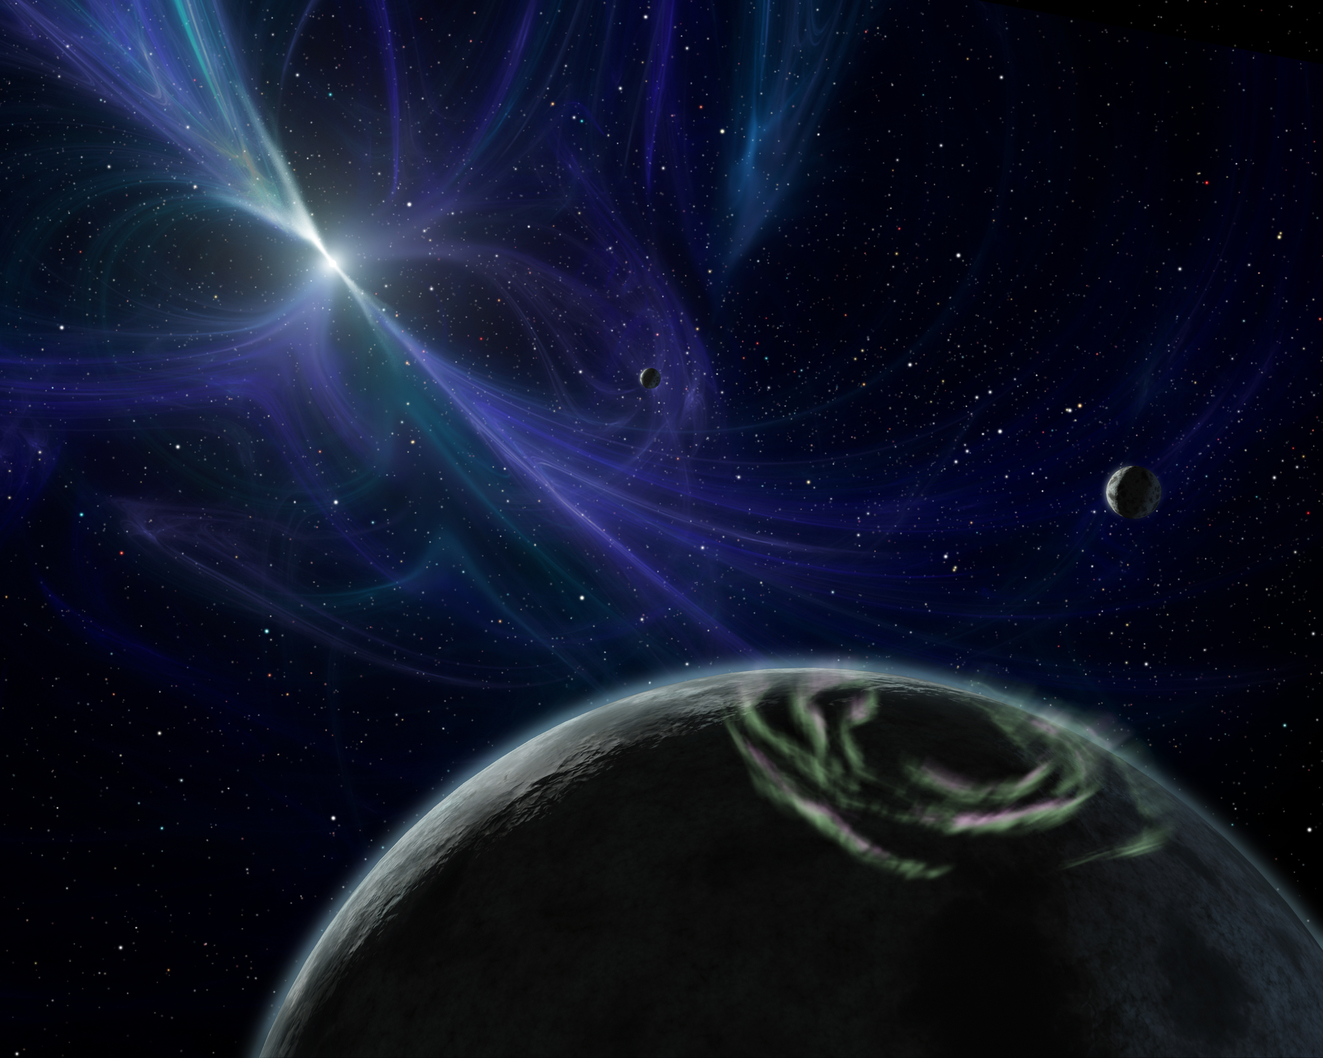 Artist's impression of the planets orbiting the pulsar PSR B1257 +12. - Image Credit: NASA/JPL-Caltech/R. Hurt (SSC)